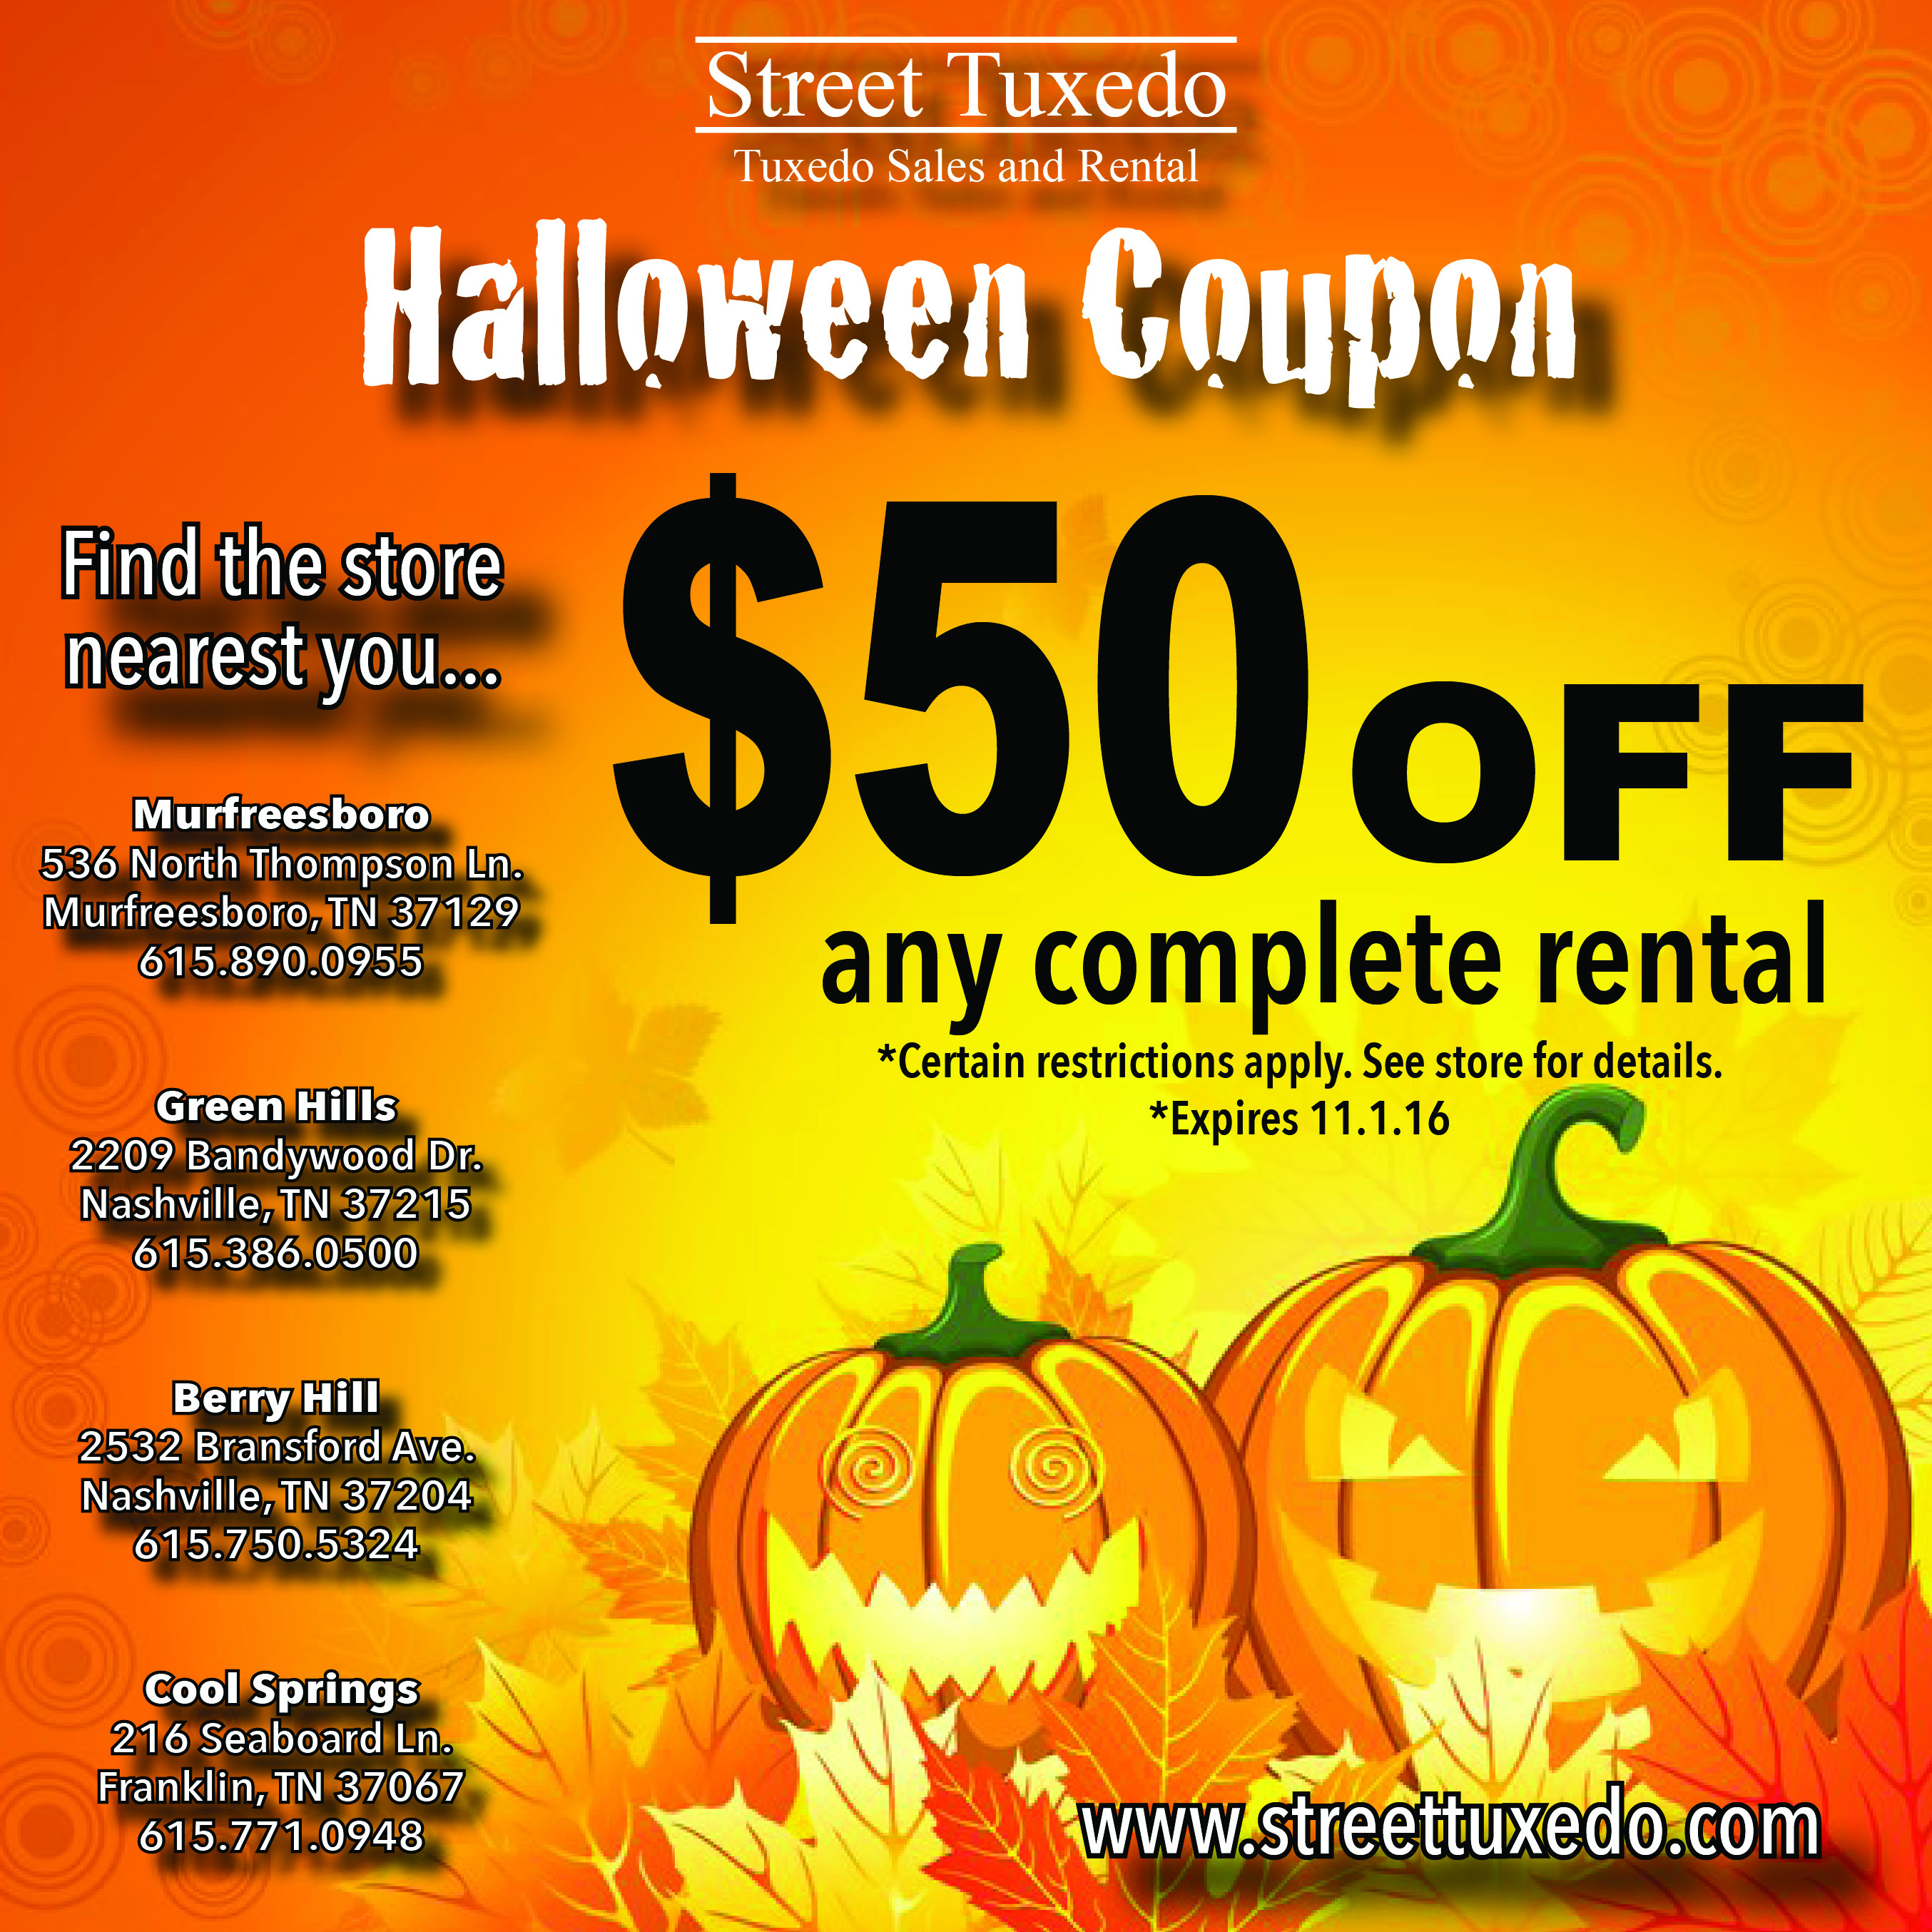 Halloween Coupon